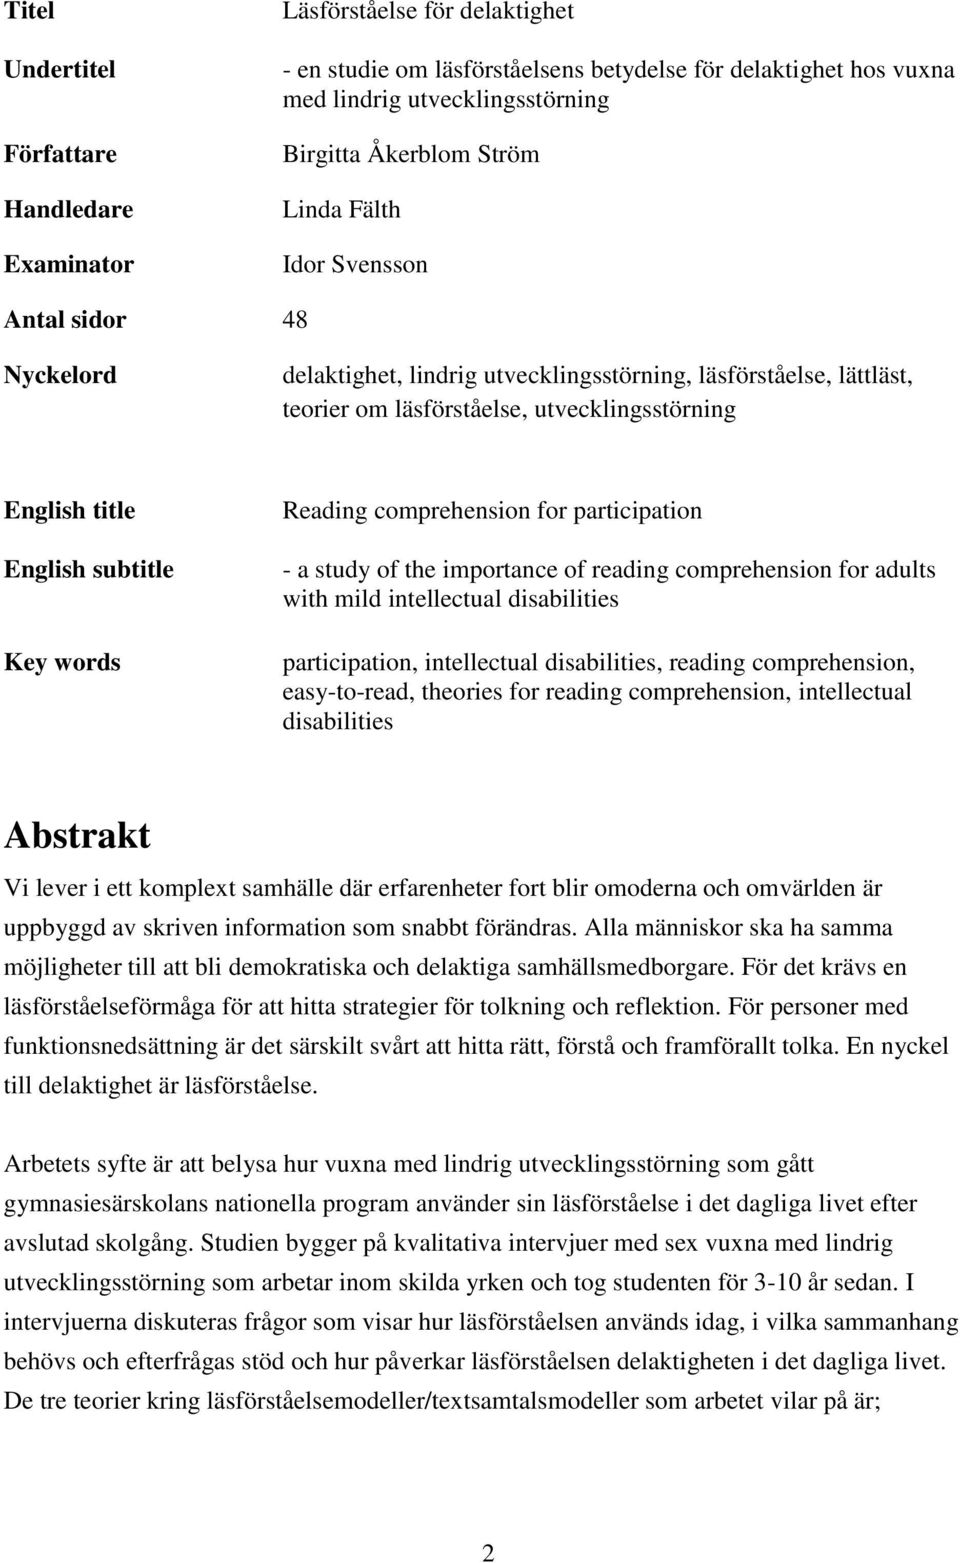 subtitle Key words Reading comprehension for participation - a study of the importance of reading comprehension for adults with mild intellectual disabilities participation, intellectual